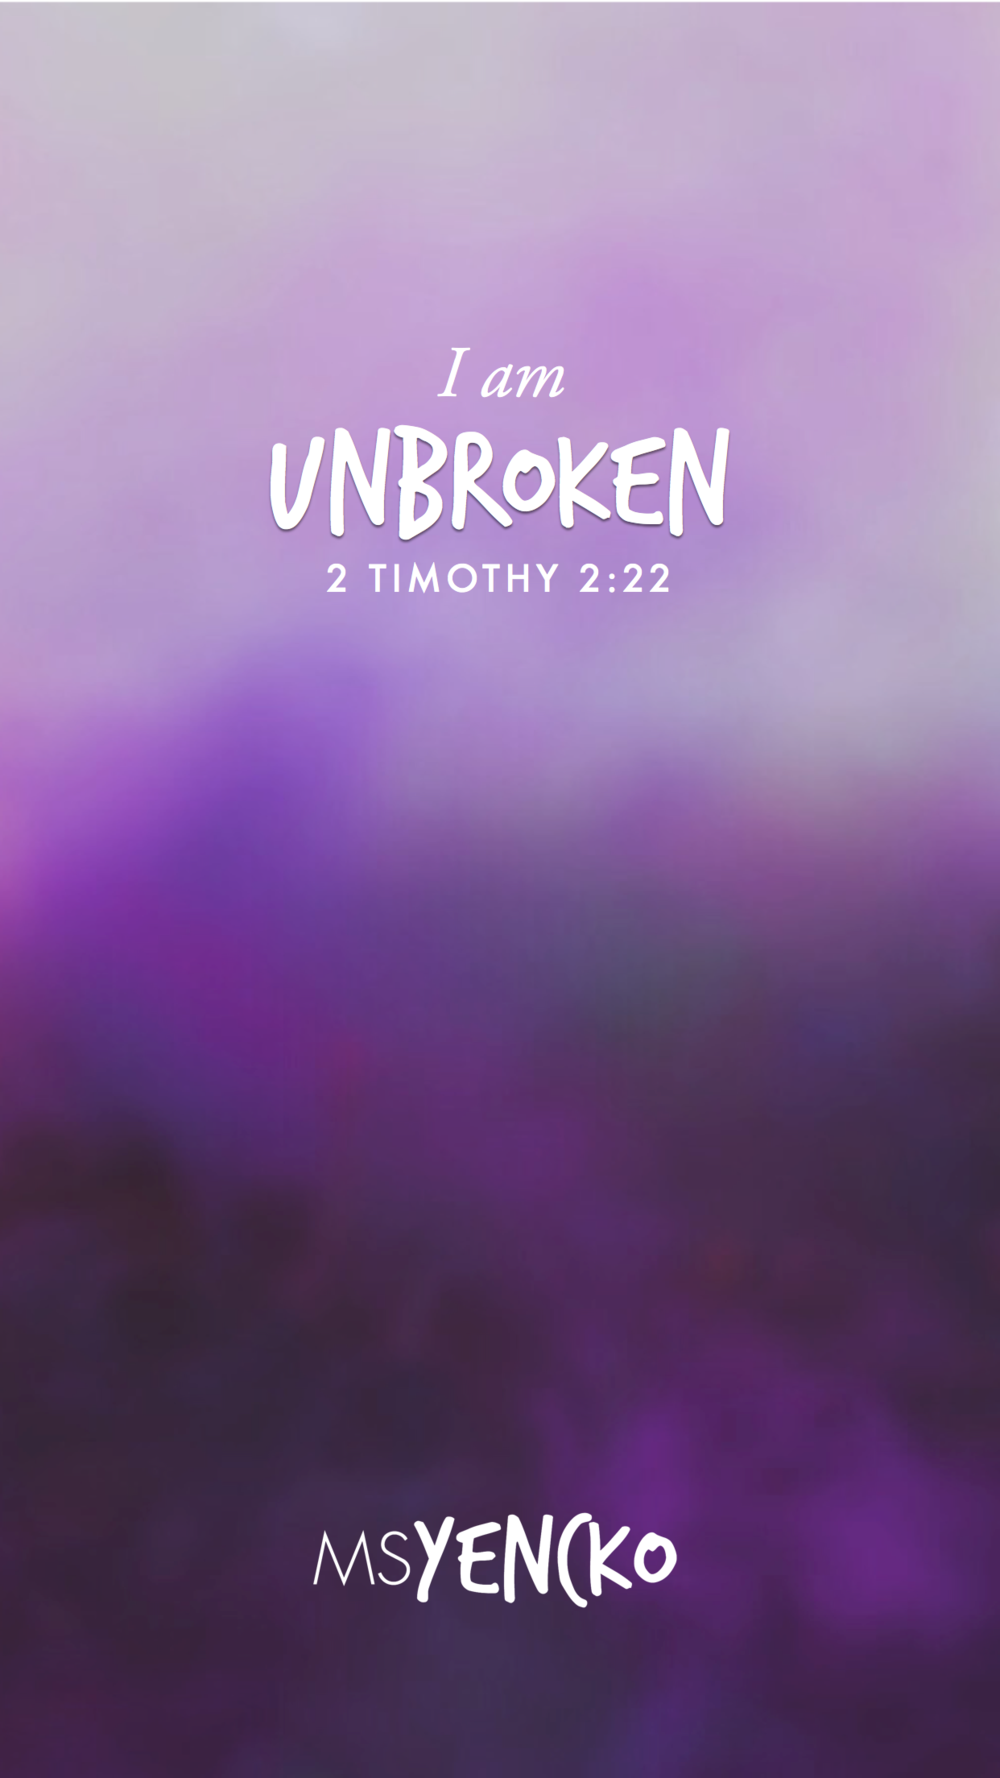 Iphone 6 Plus - Unbroken.png